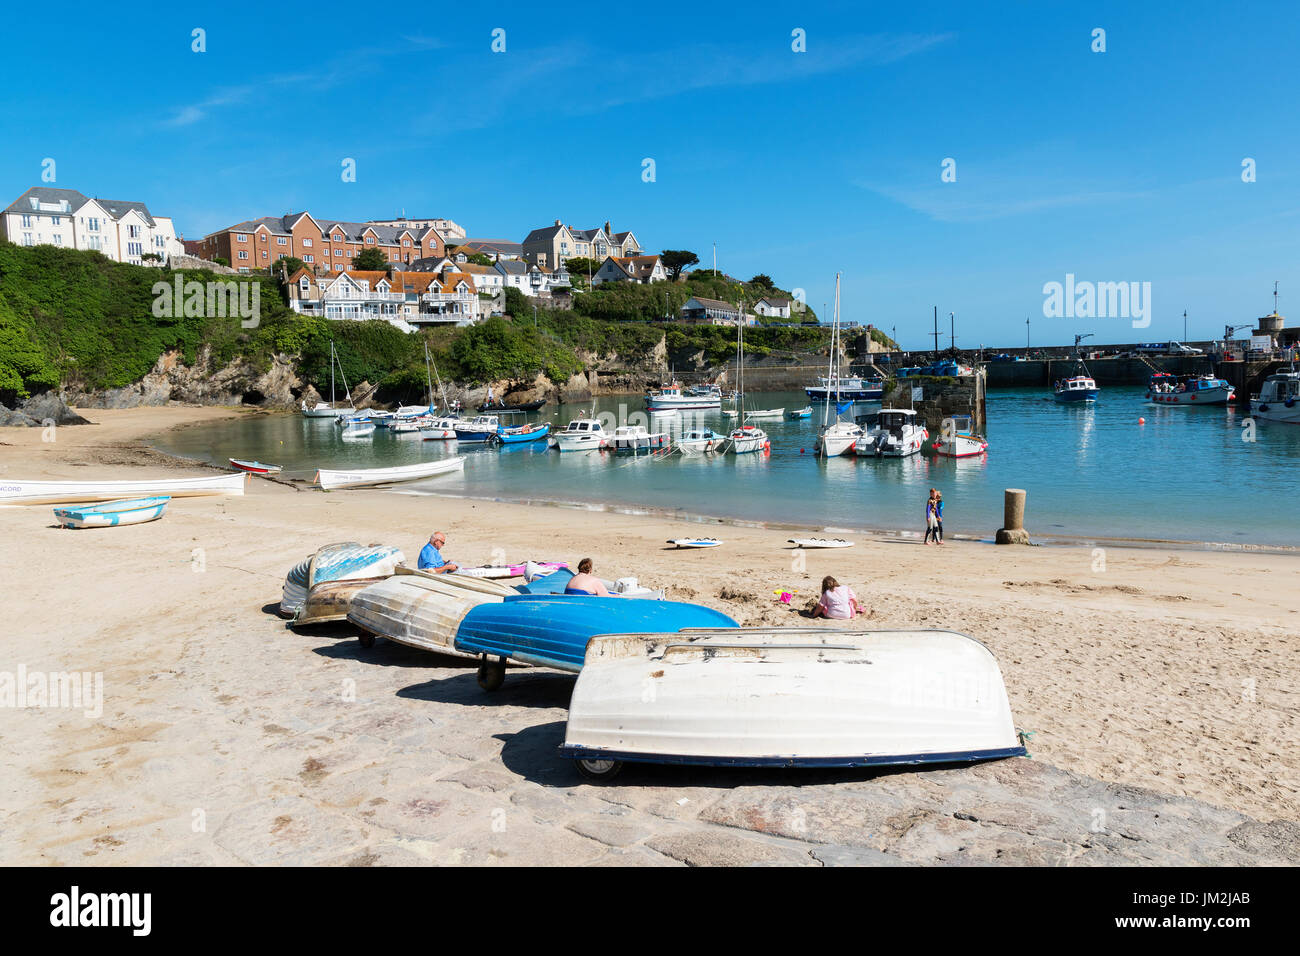 the harbour at newquay in cornwall, england, uk. - Stock Image